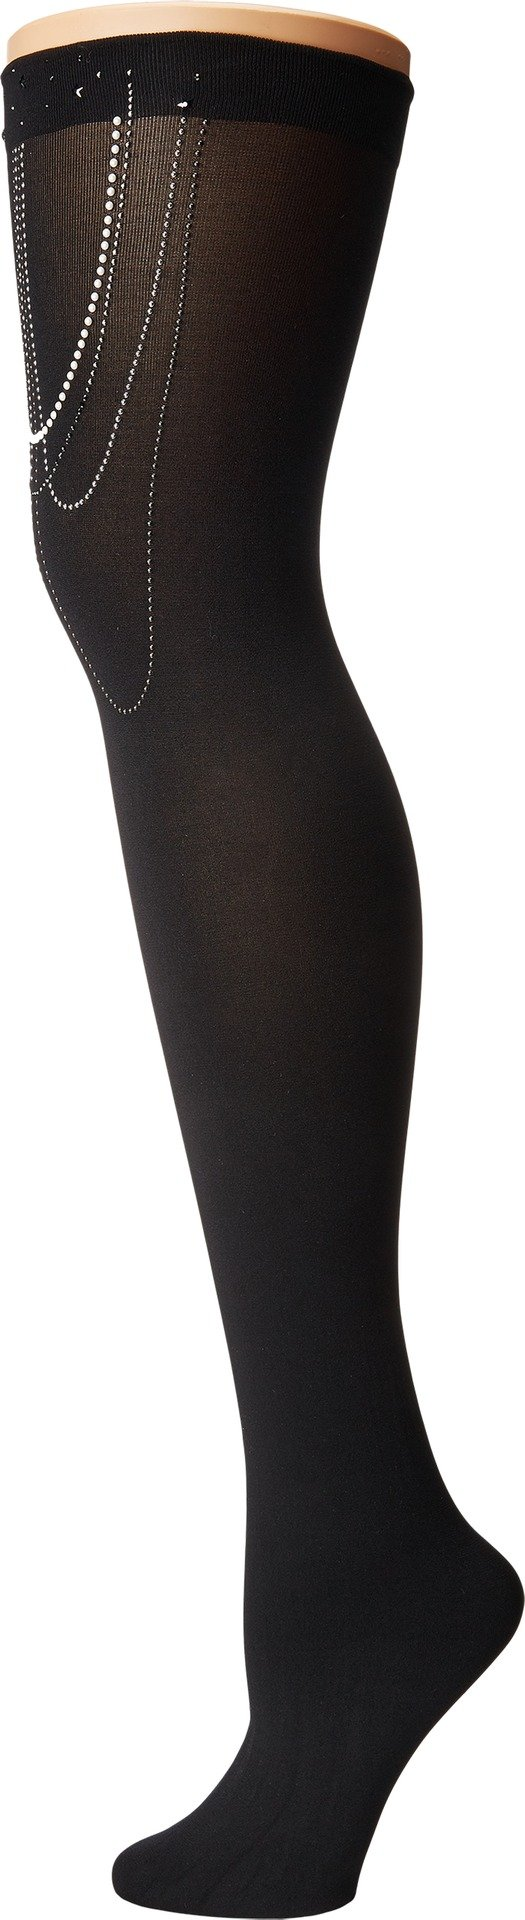 Wolford Women's Jewelled Stay-Up Black/Sparkle Medium